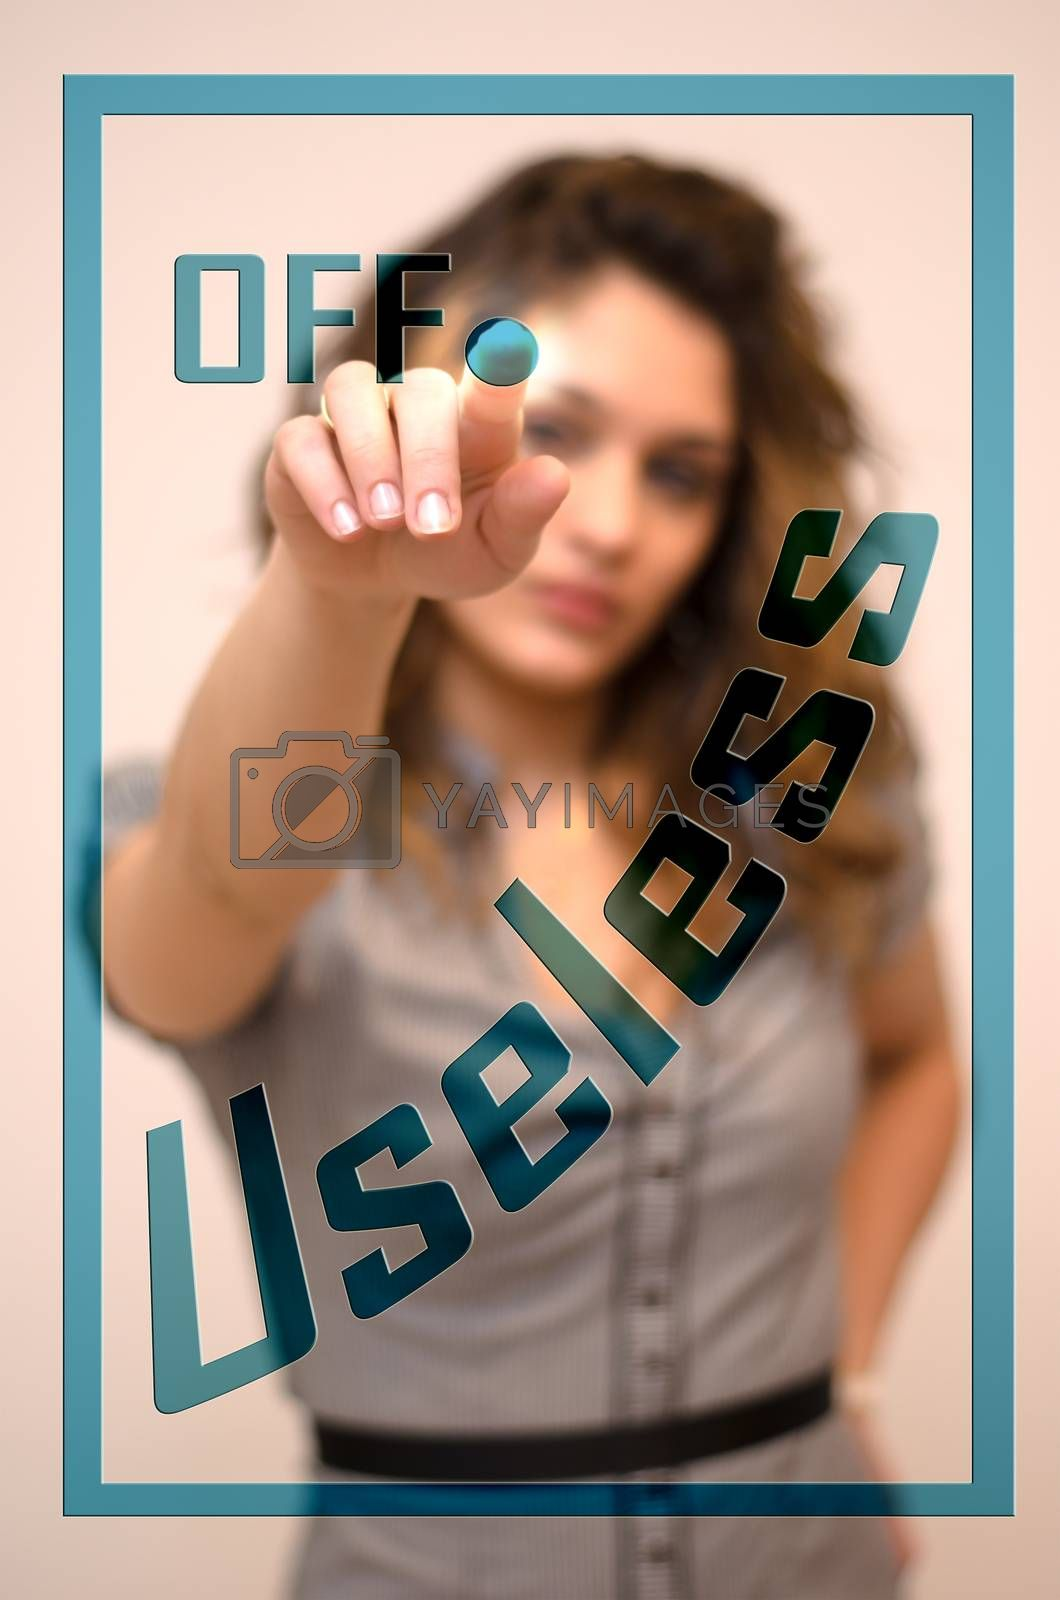 Royalty free image of woman turning off Useless on panel by vepar5